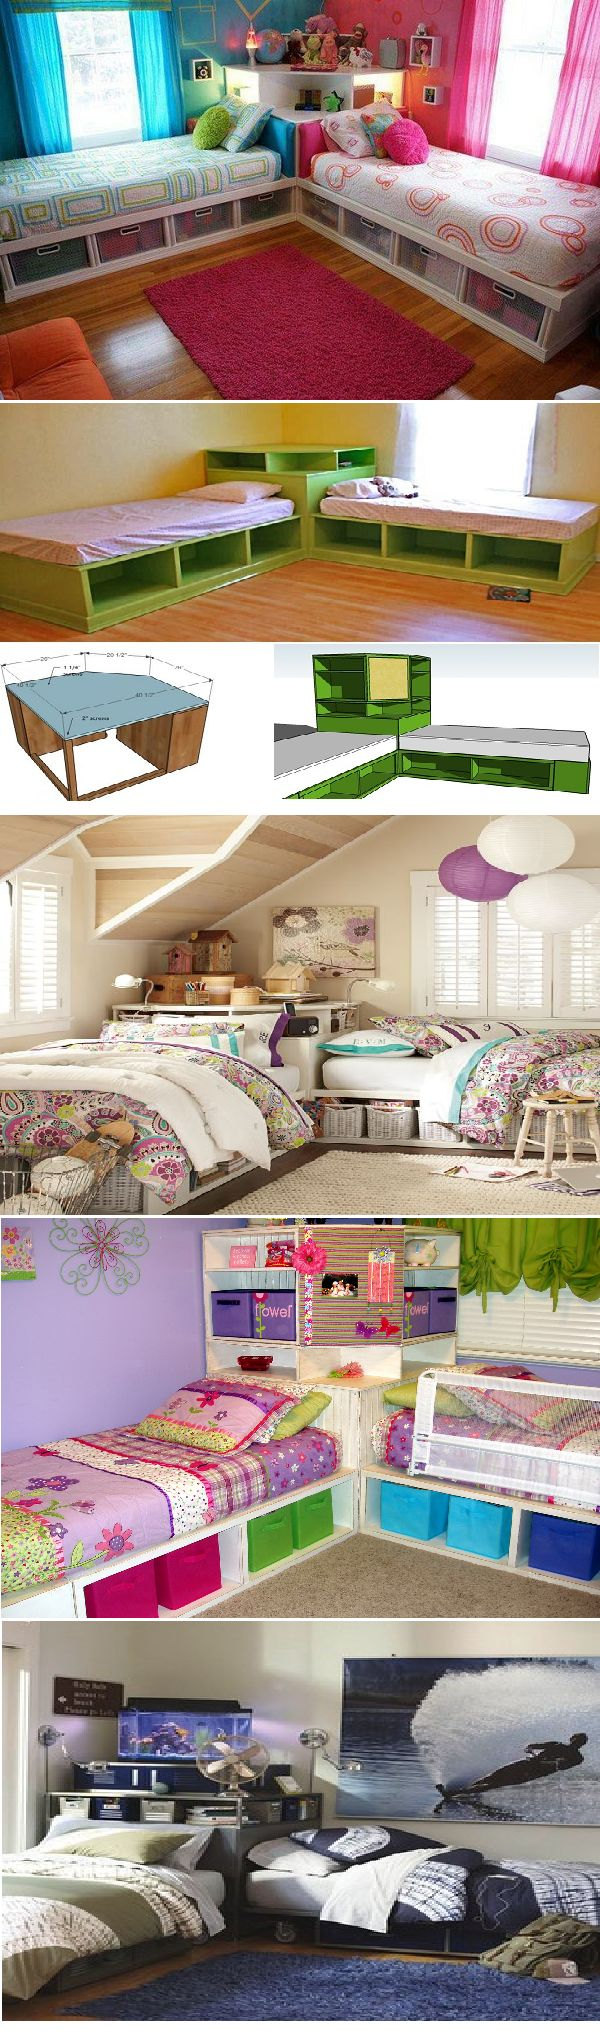 Best Kids Rooms Best 25 Kids Bedroom Organization Ideas On Pinterest  Playroom